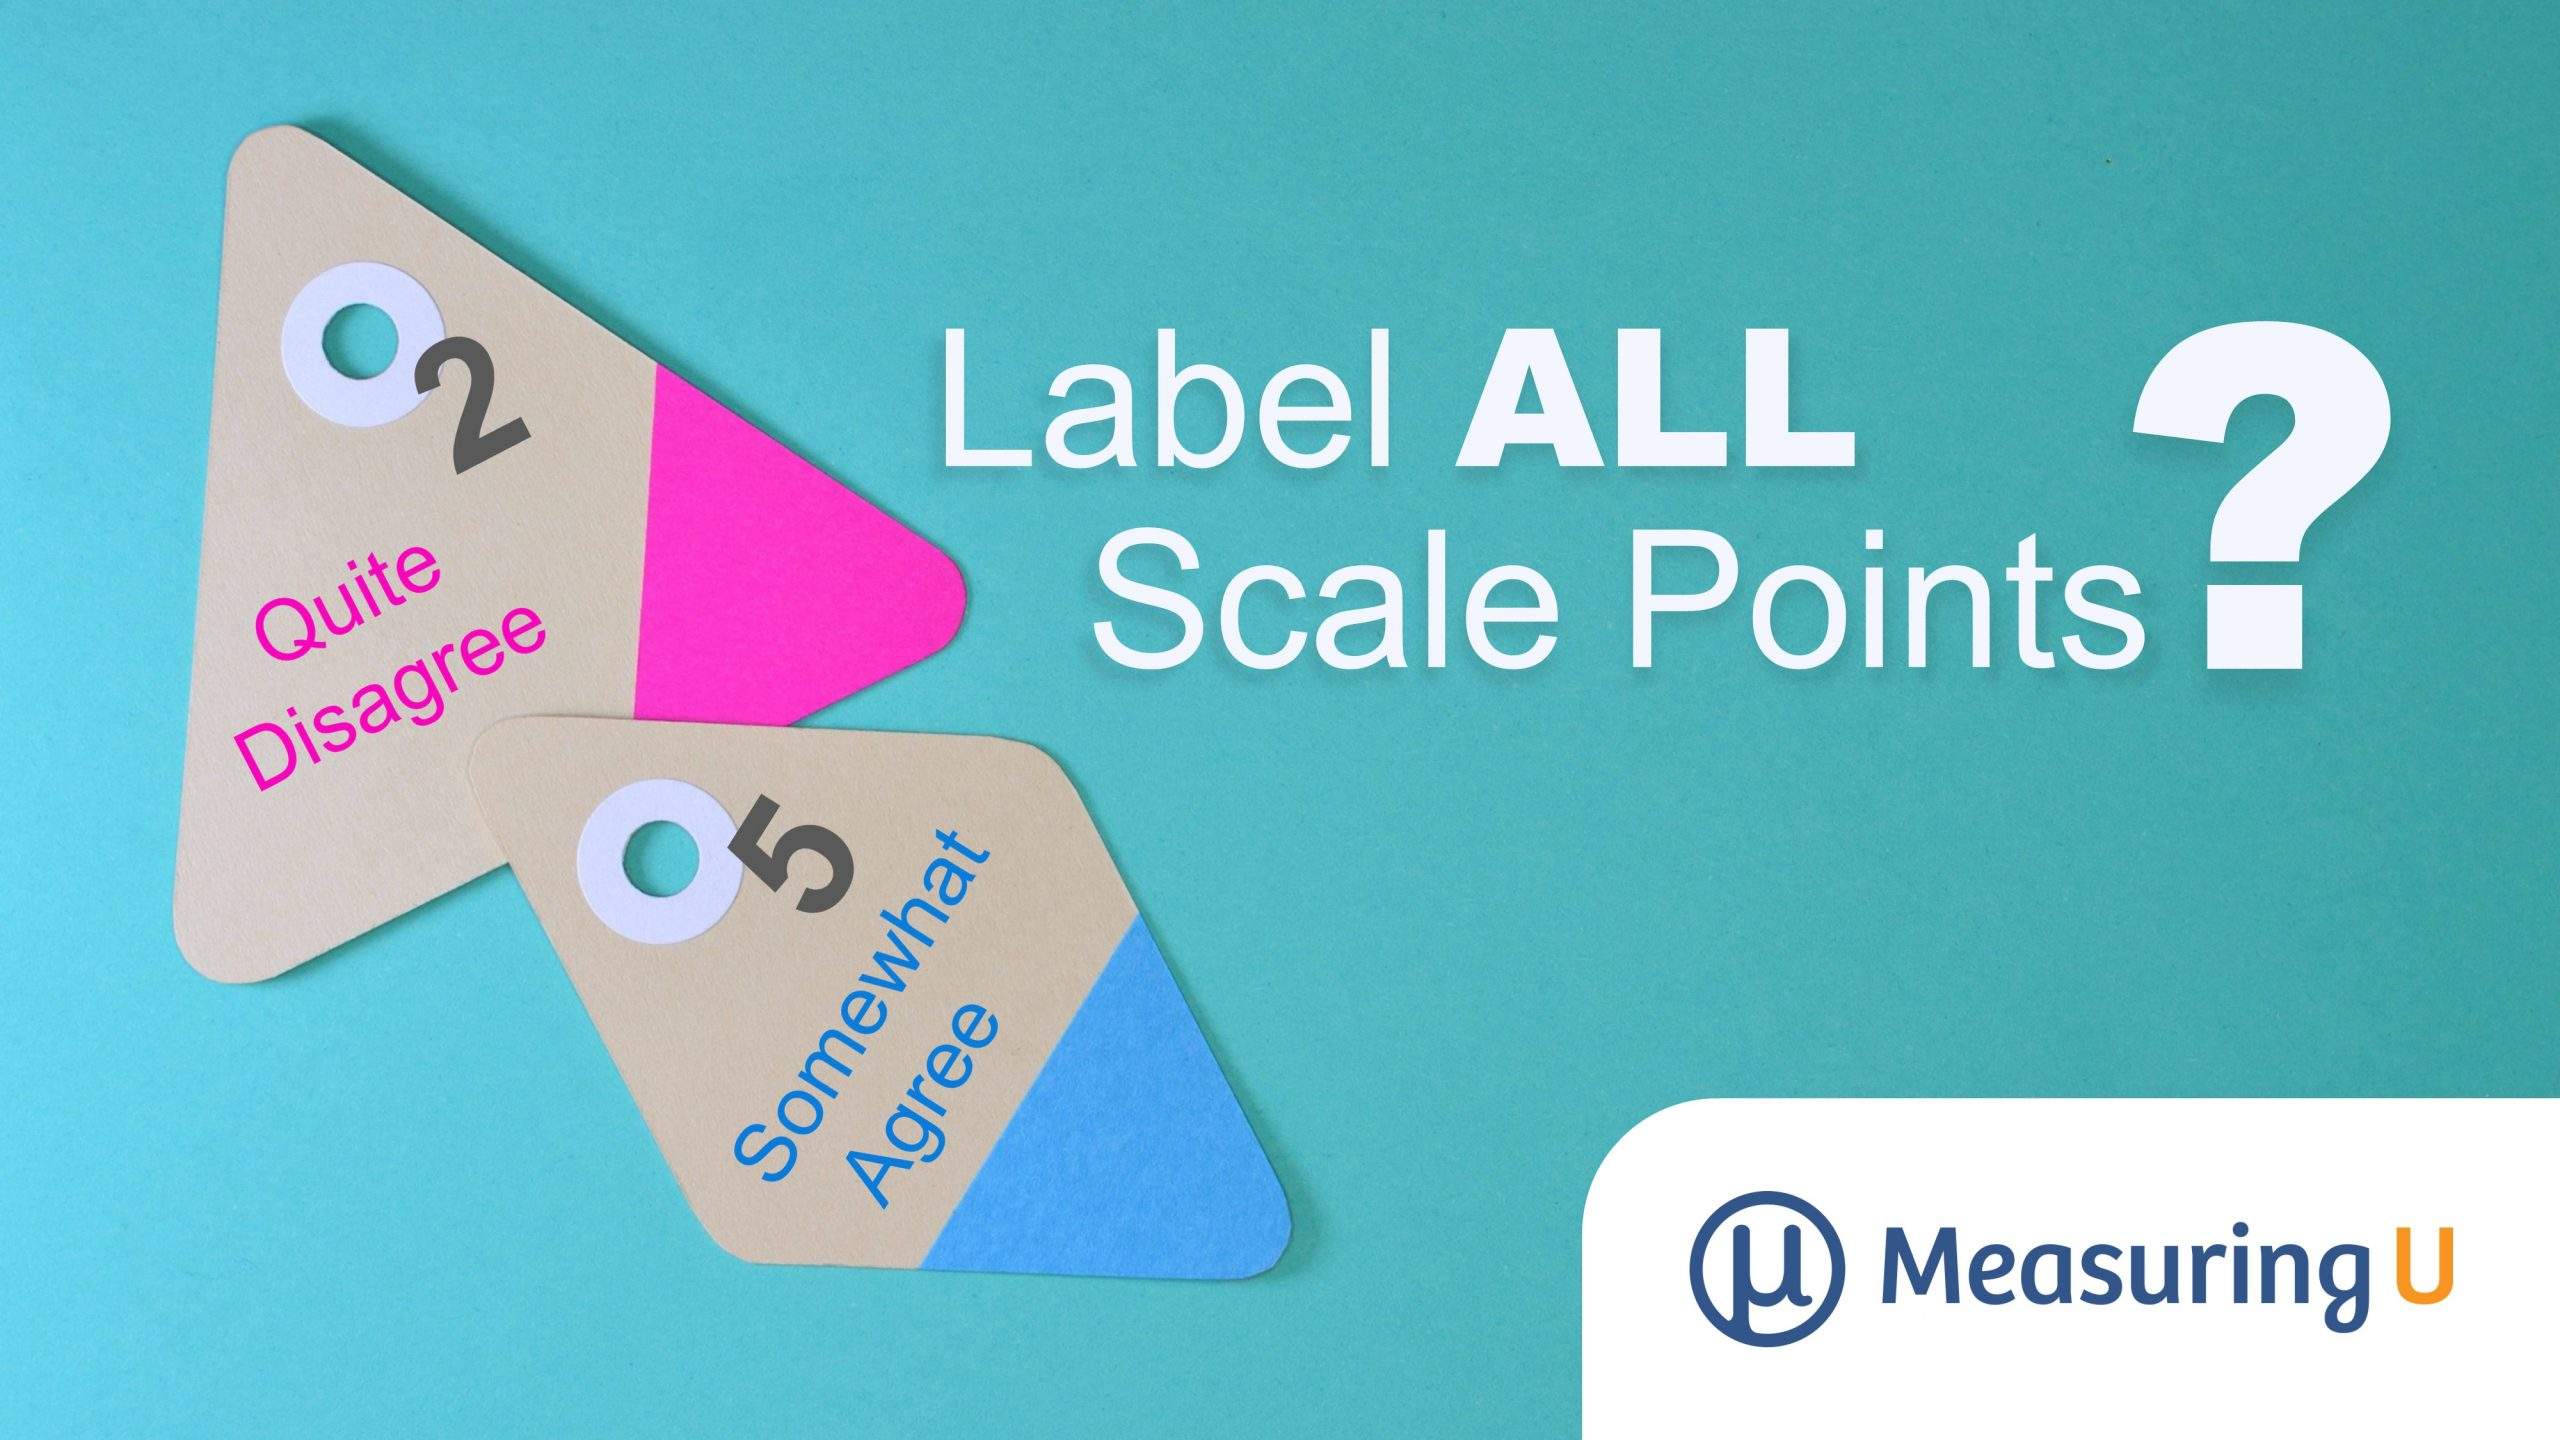 Should All Scale Points Be Labeled?